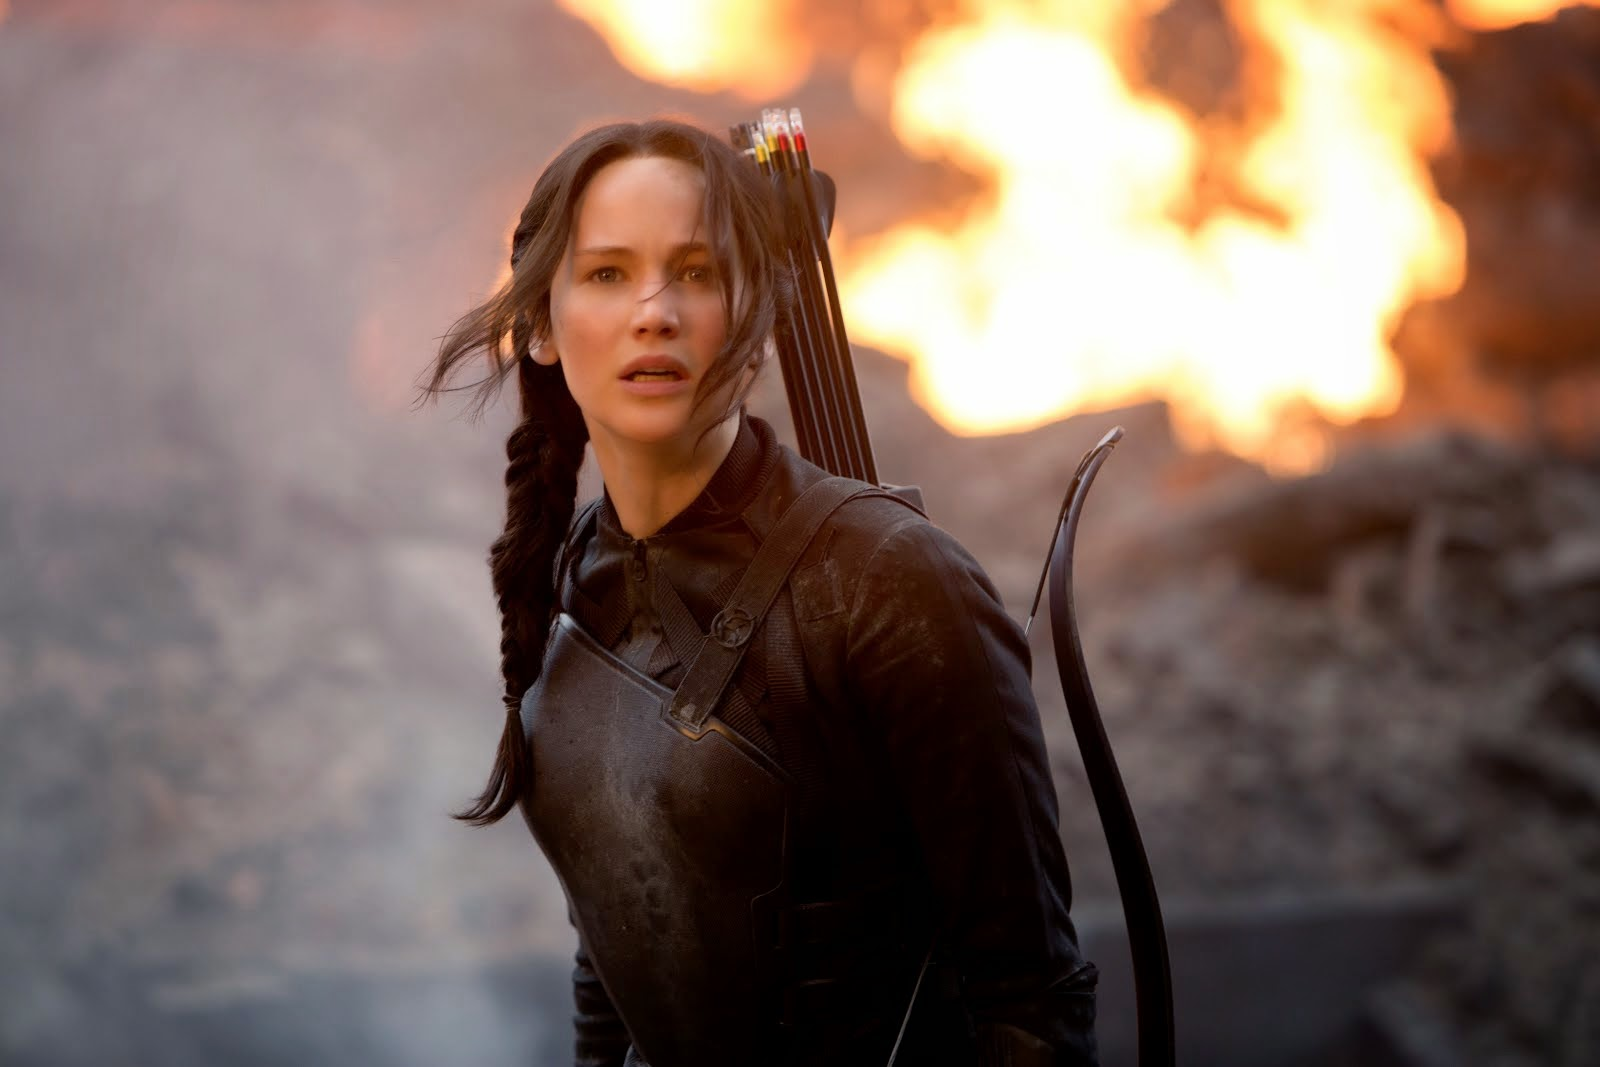 Recent Post: The Hunger Games:MockingJay Part 1